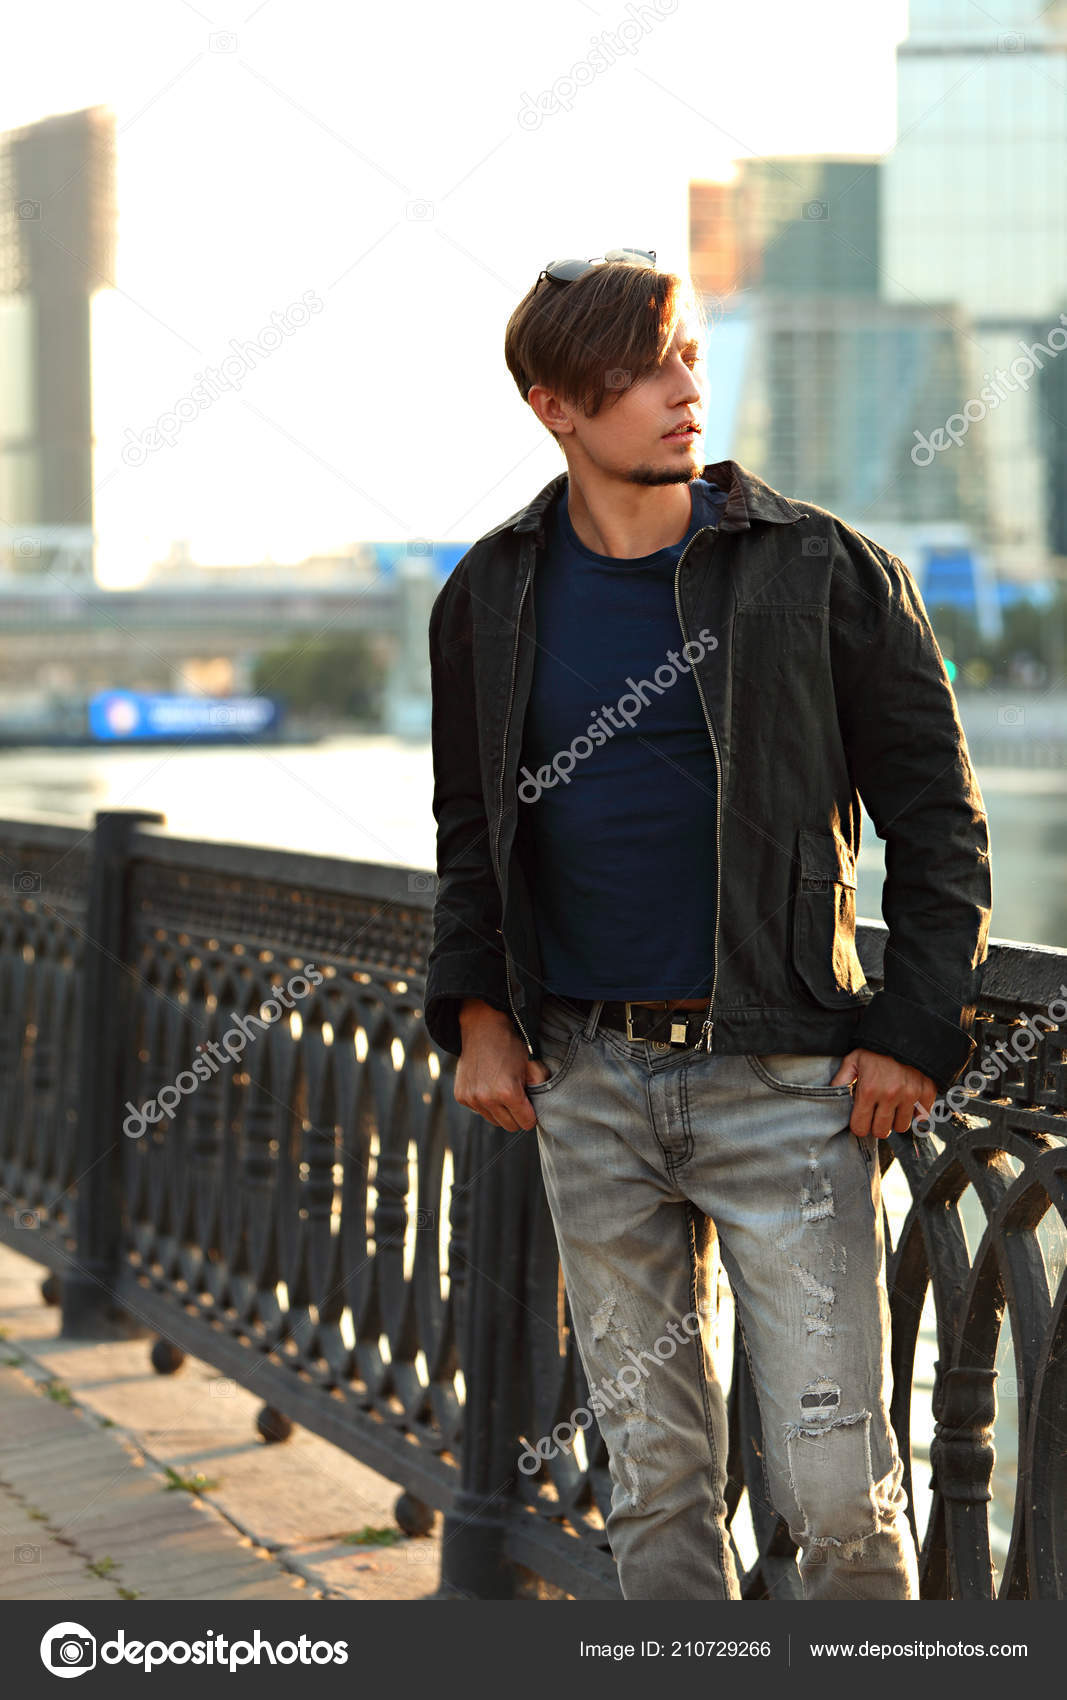 1ed1c19e Thinking Casual Handsome Young Man Walking Fashion Jeans Black Jacket —  Stock Photo